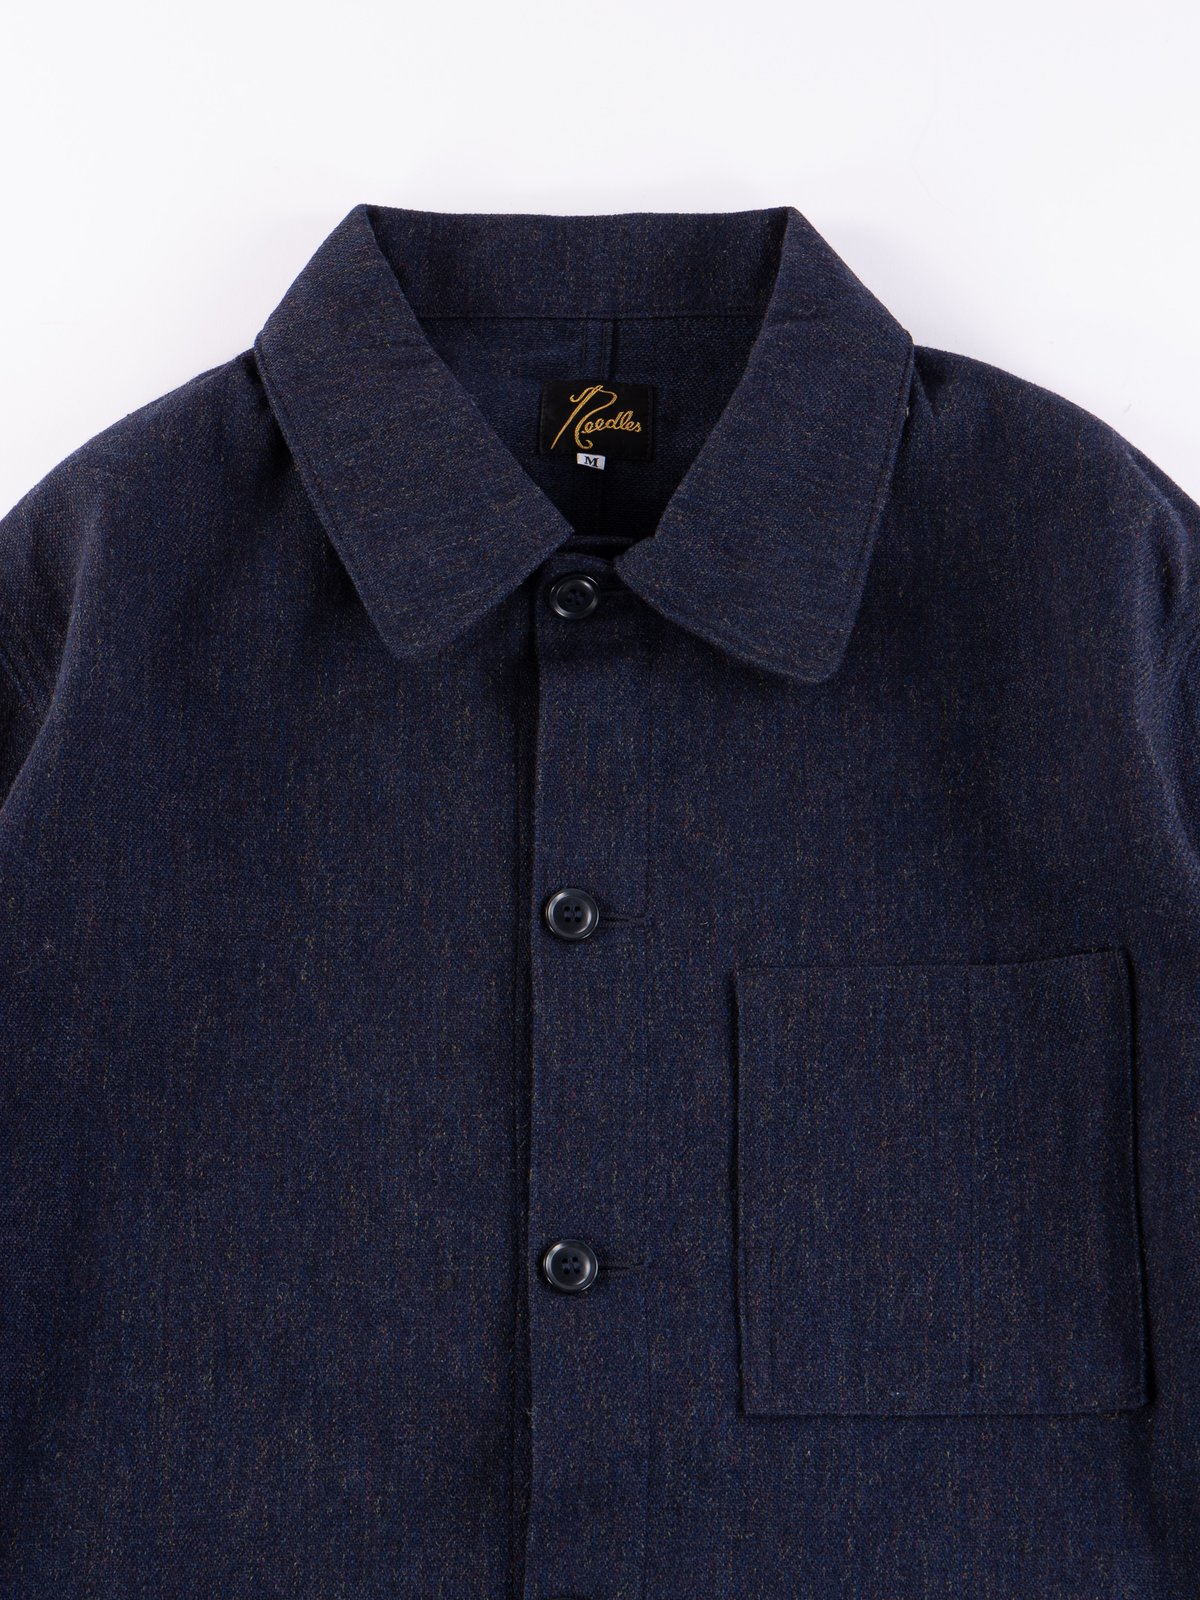 Navy Wool/Cotton Serge D.N Coverall - Image 2